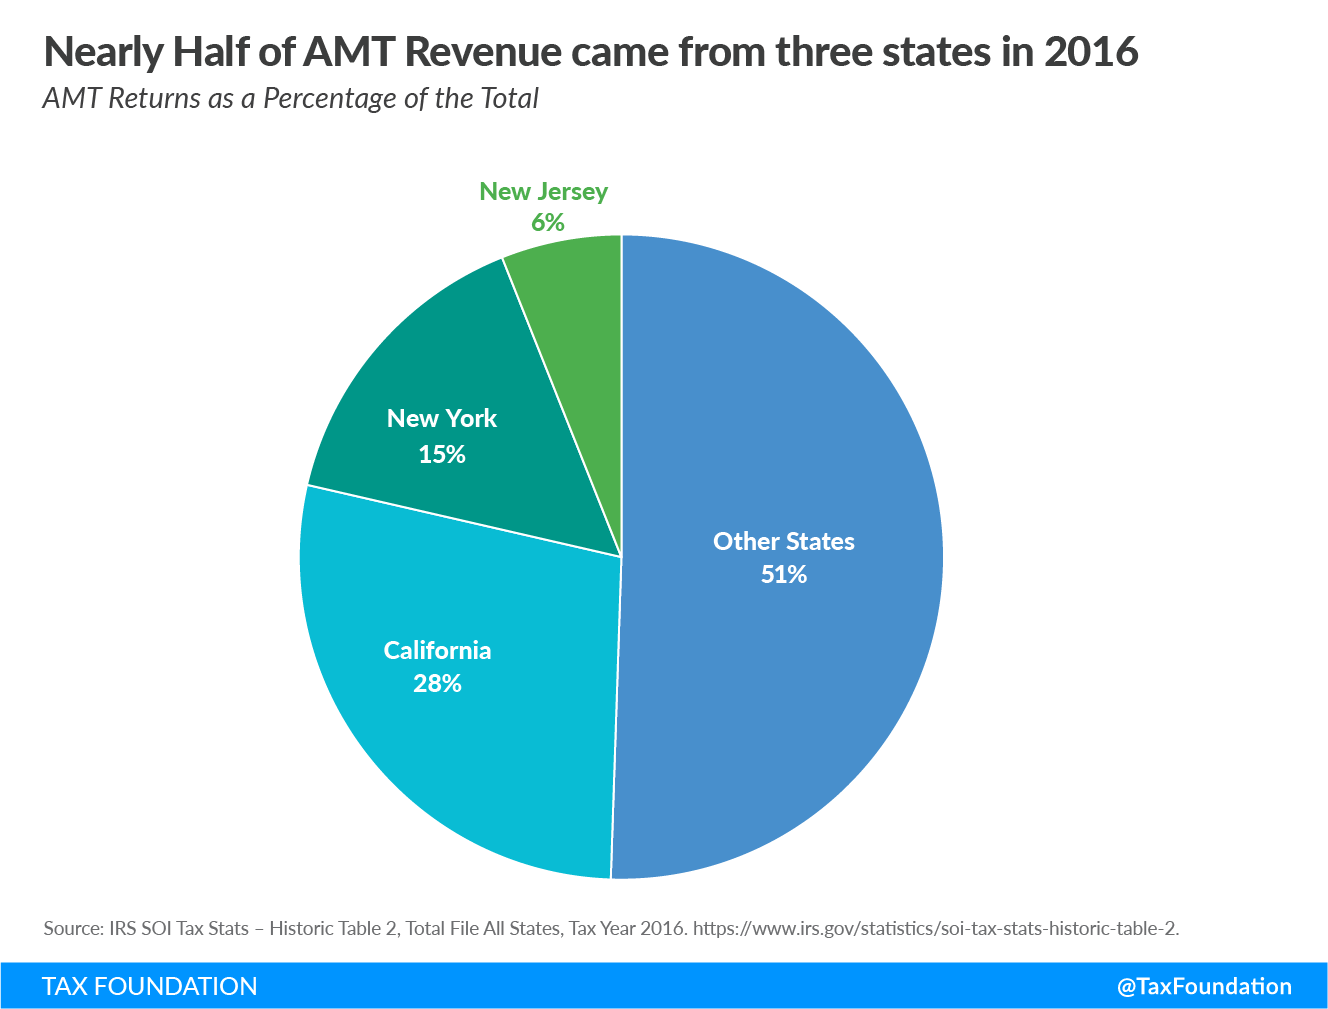 Nearly half of alternative minimum tax AMT revenue came from three states in 2016